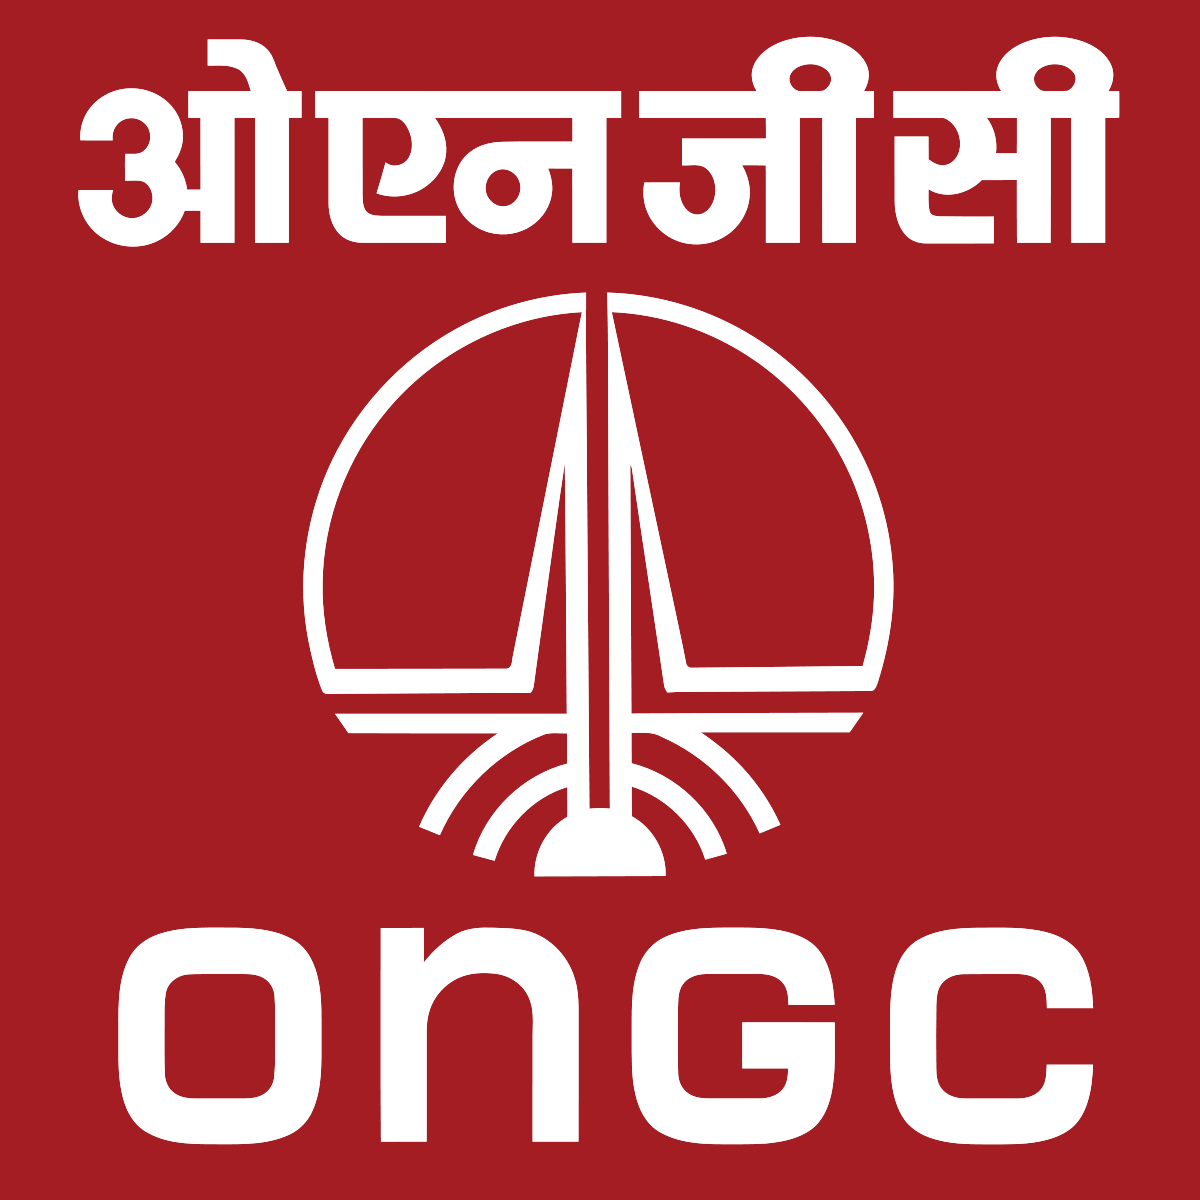 Oil and Gas Corporation Limited